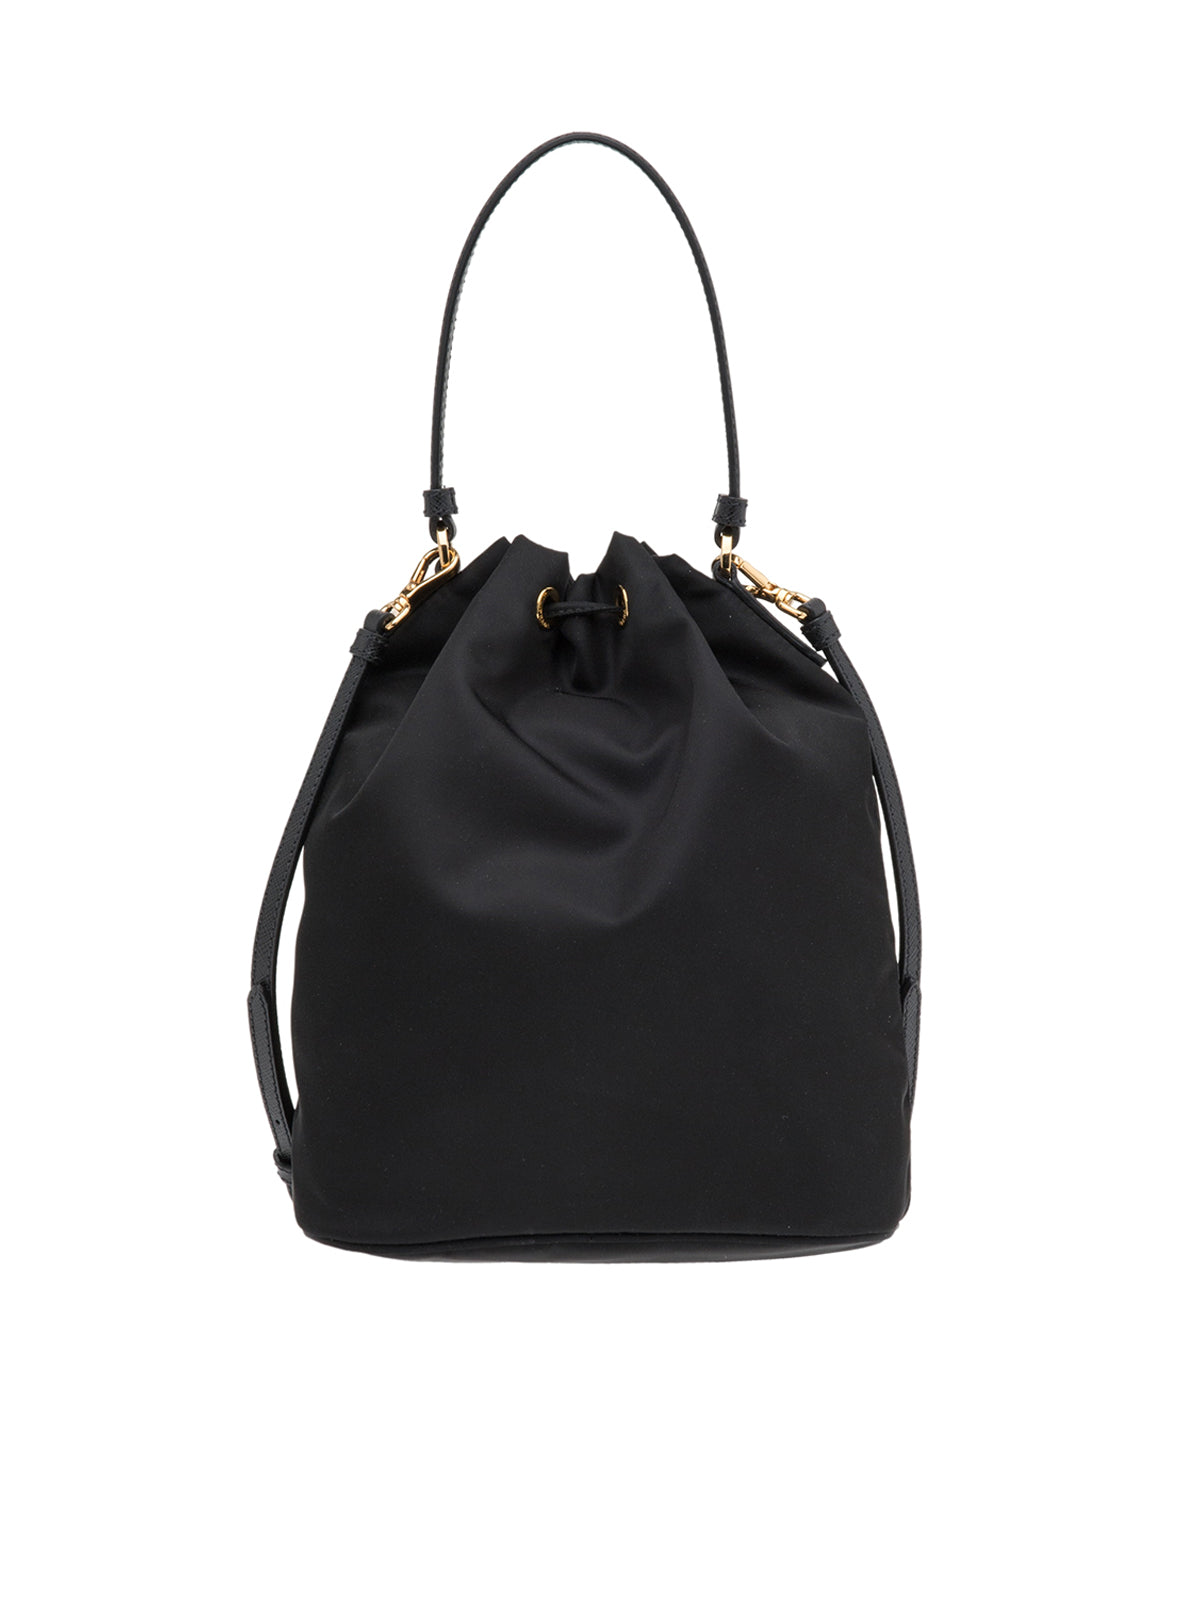 Nylon Prada Duet Shoulder Bag